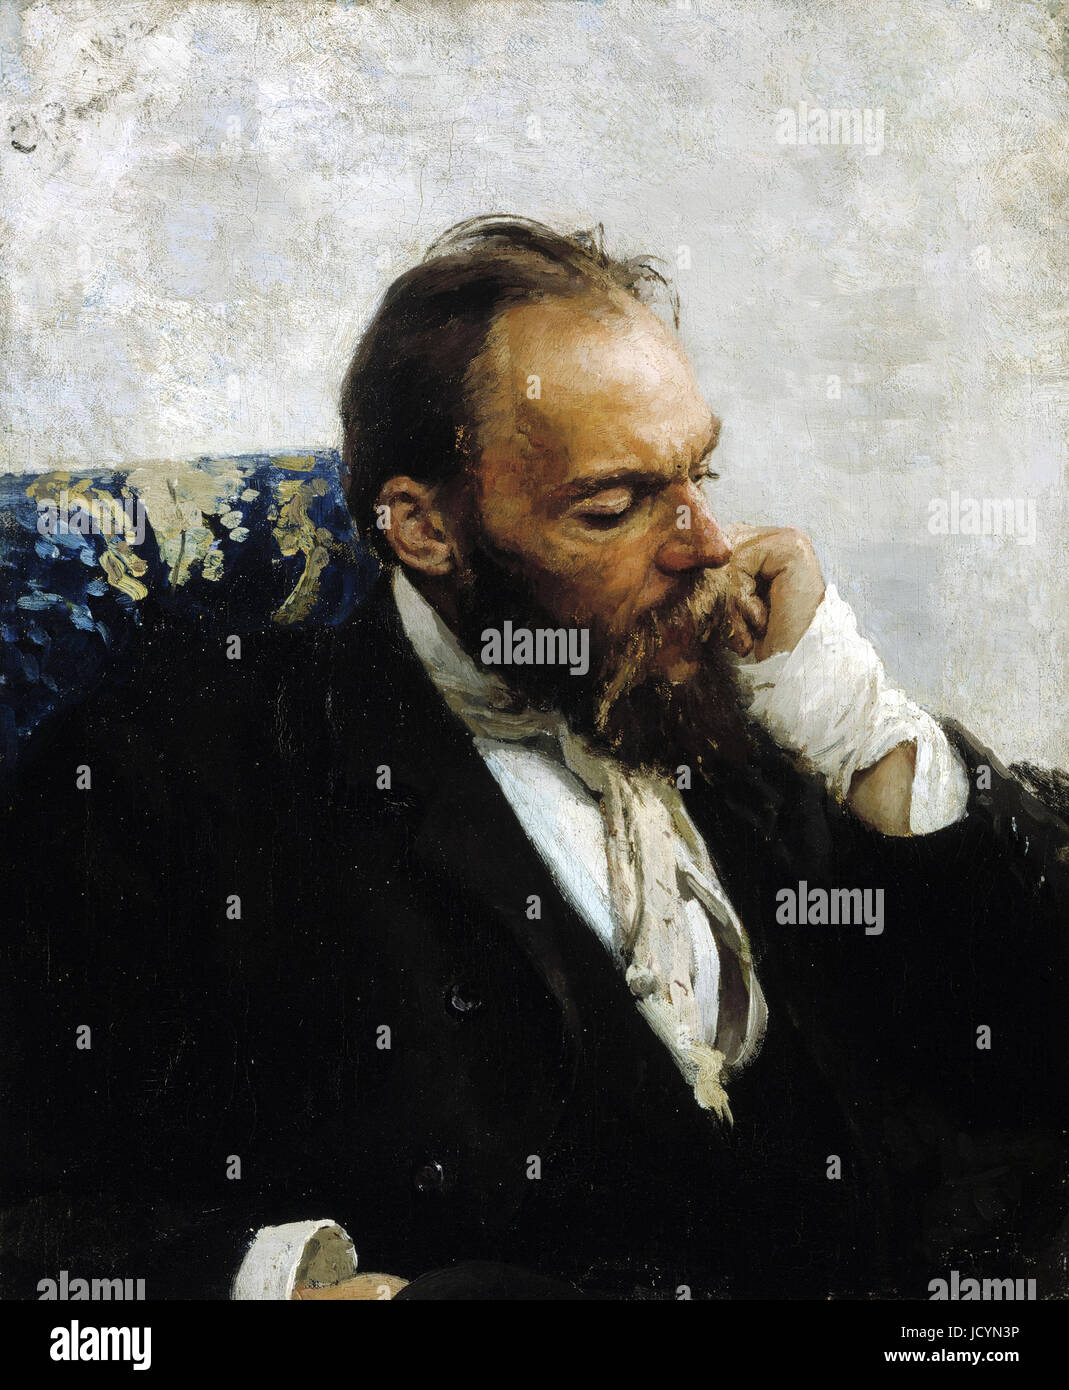 Ilya Repin, Portrait of Professor Ivanov 1882 Oil on canvas. Ateneum, Helsinki, Finland. - Stock Image